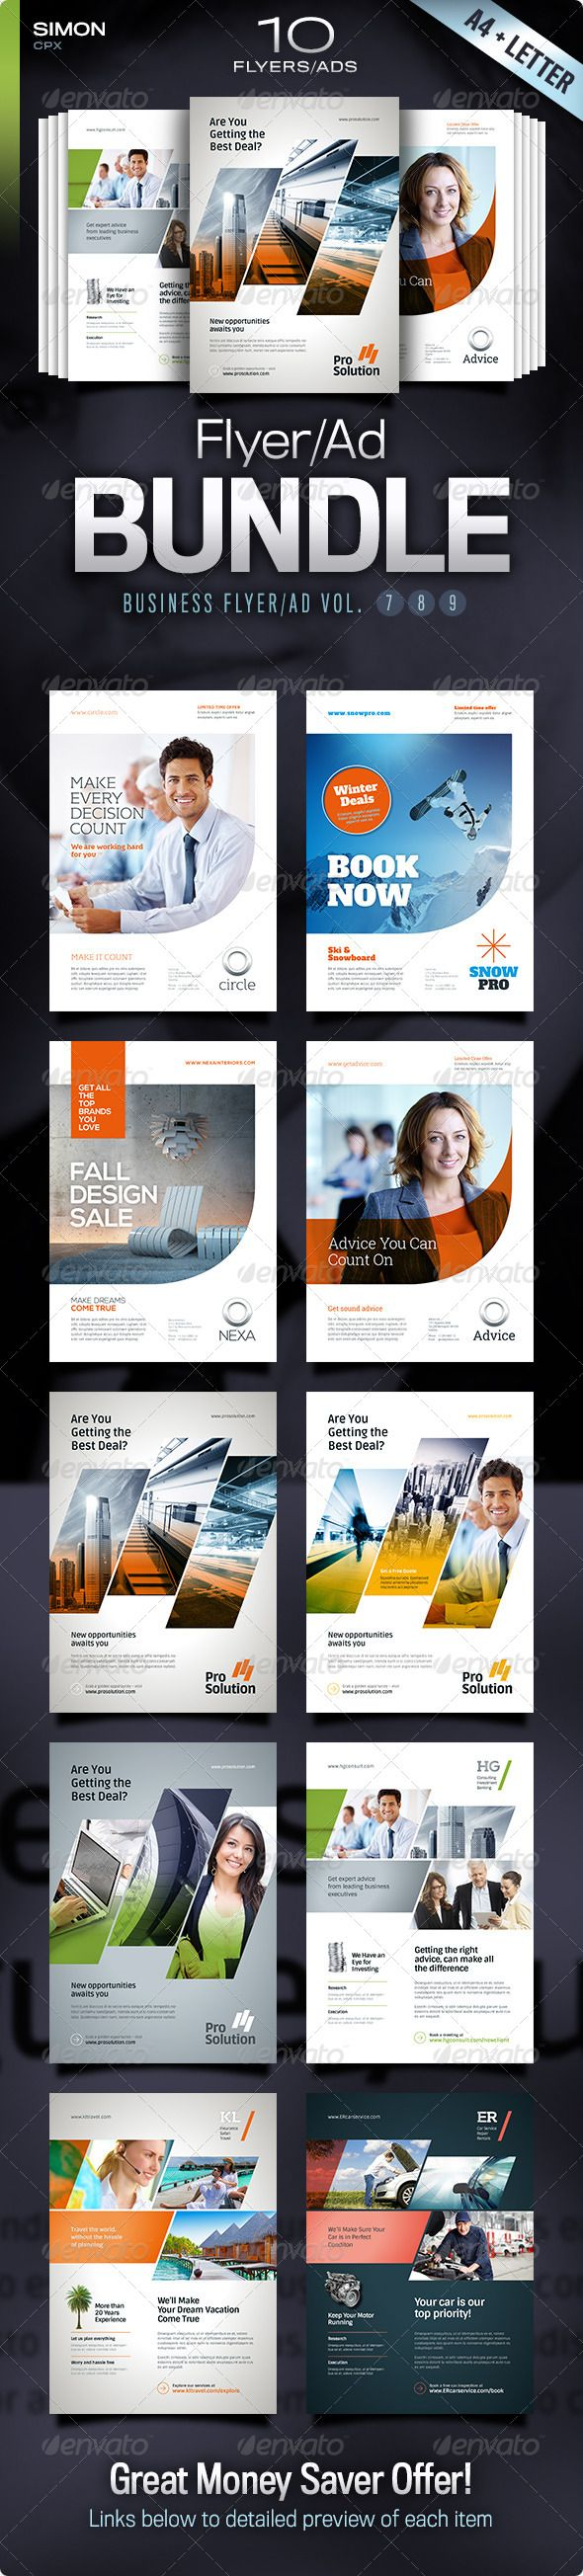 Business Flyer/Ad Bundle Vol. 7-8-9 - Corporate Flyers